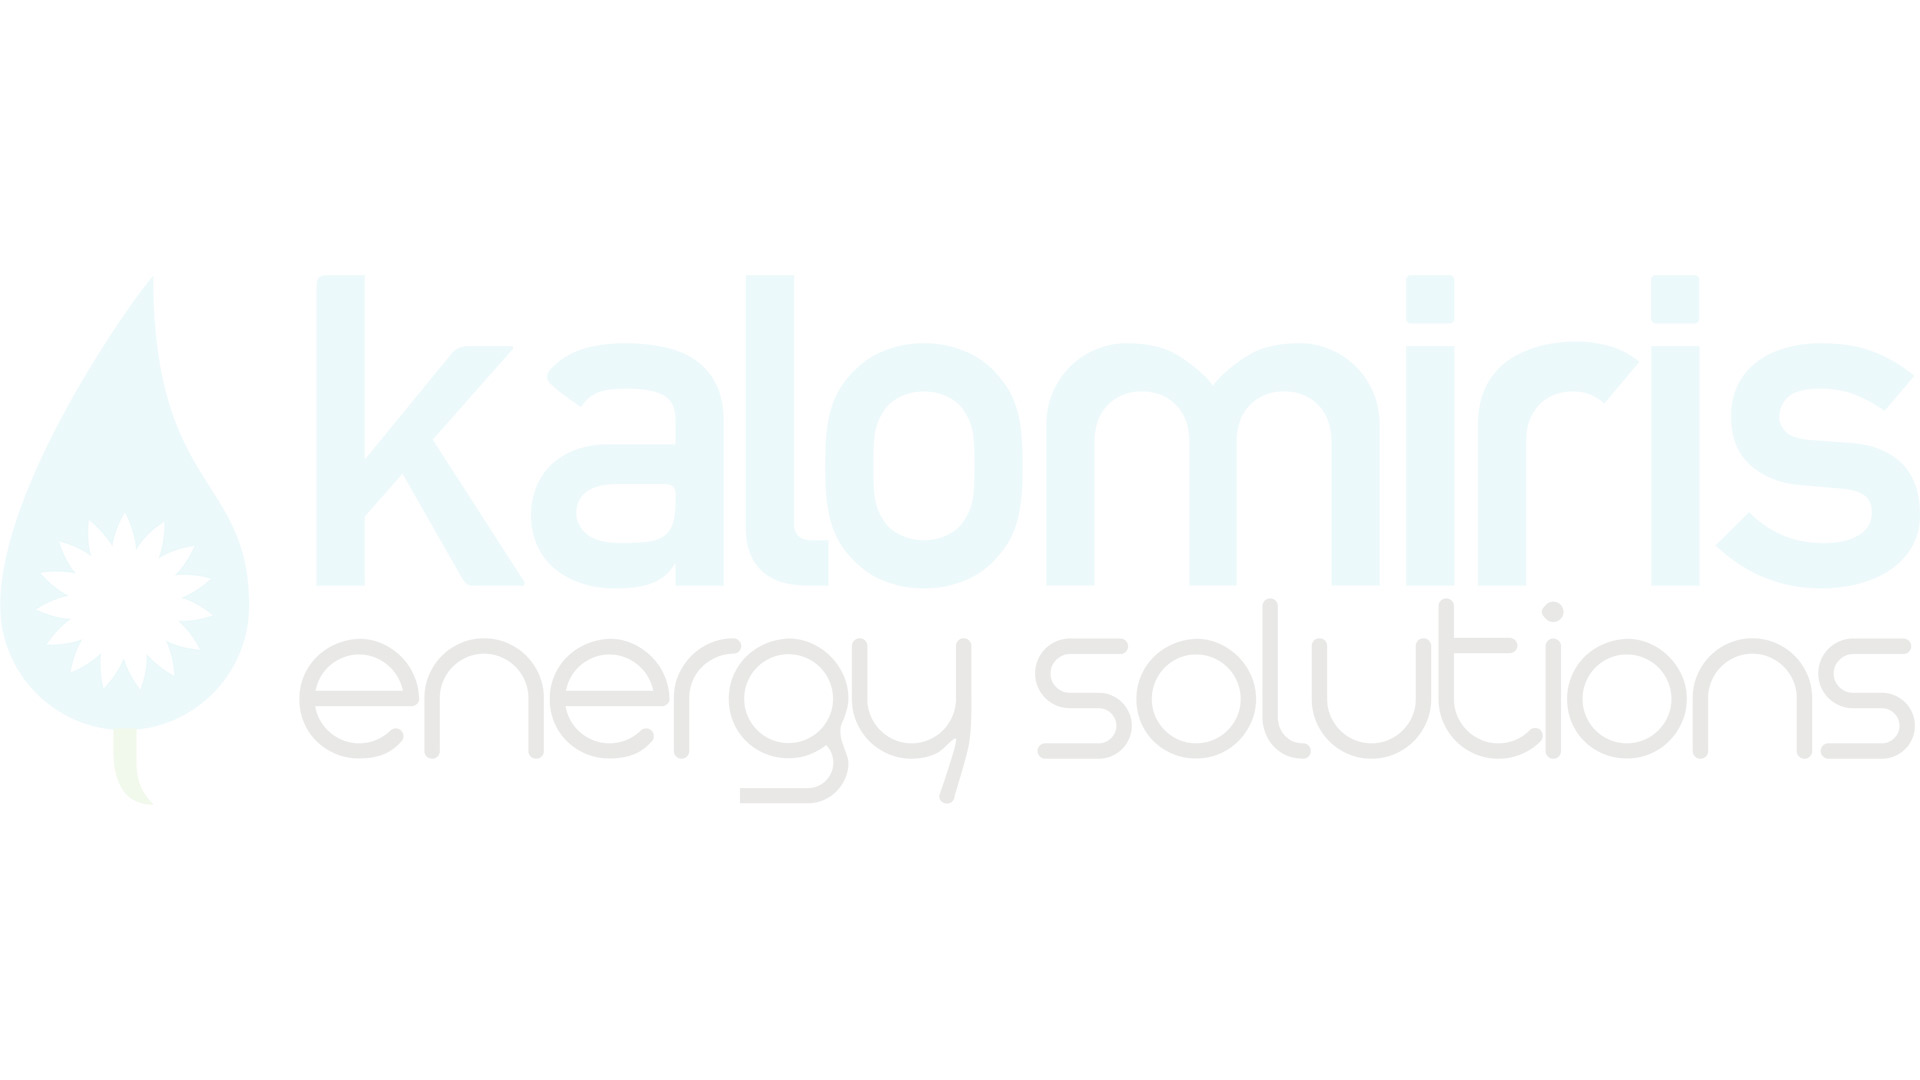 Ceiling Fan CASAFAN ECO NEO II 132 BG Silver Grey / Wenge 52 (132cm) with Light KIT